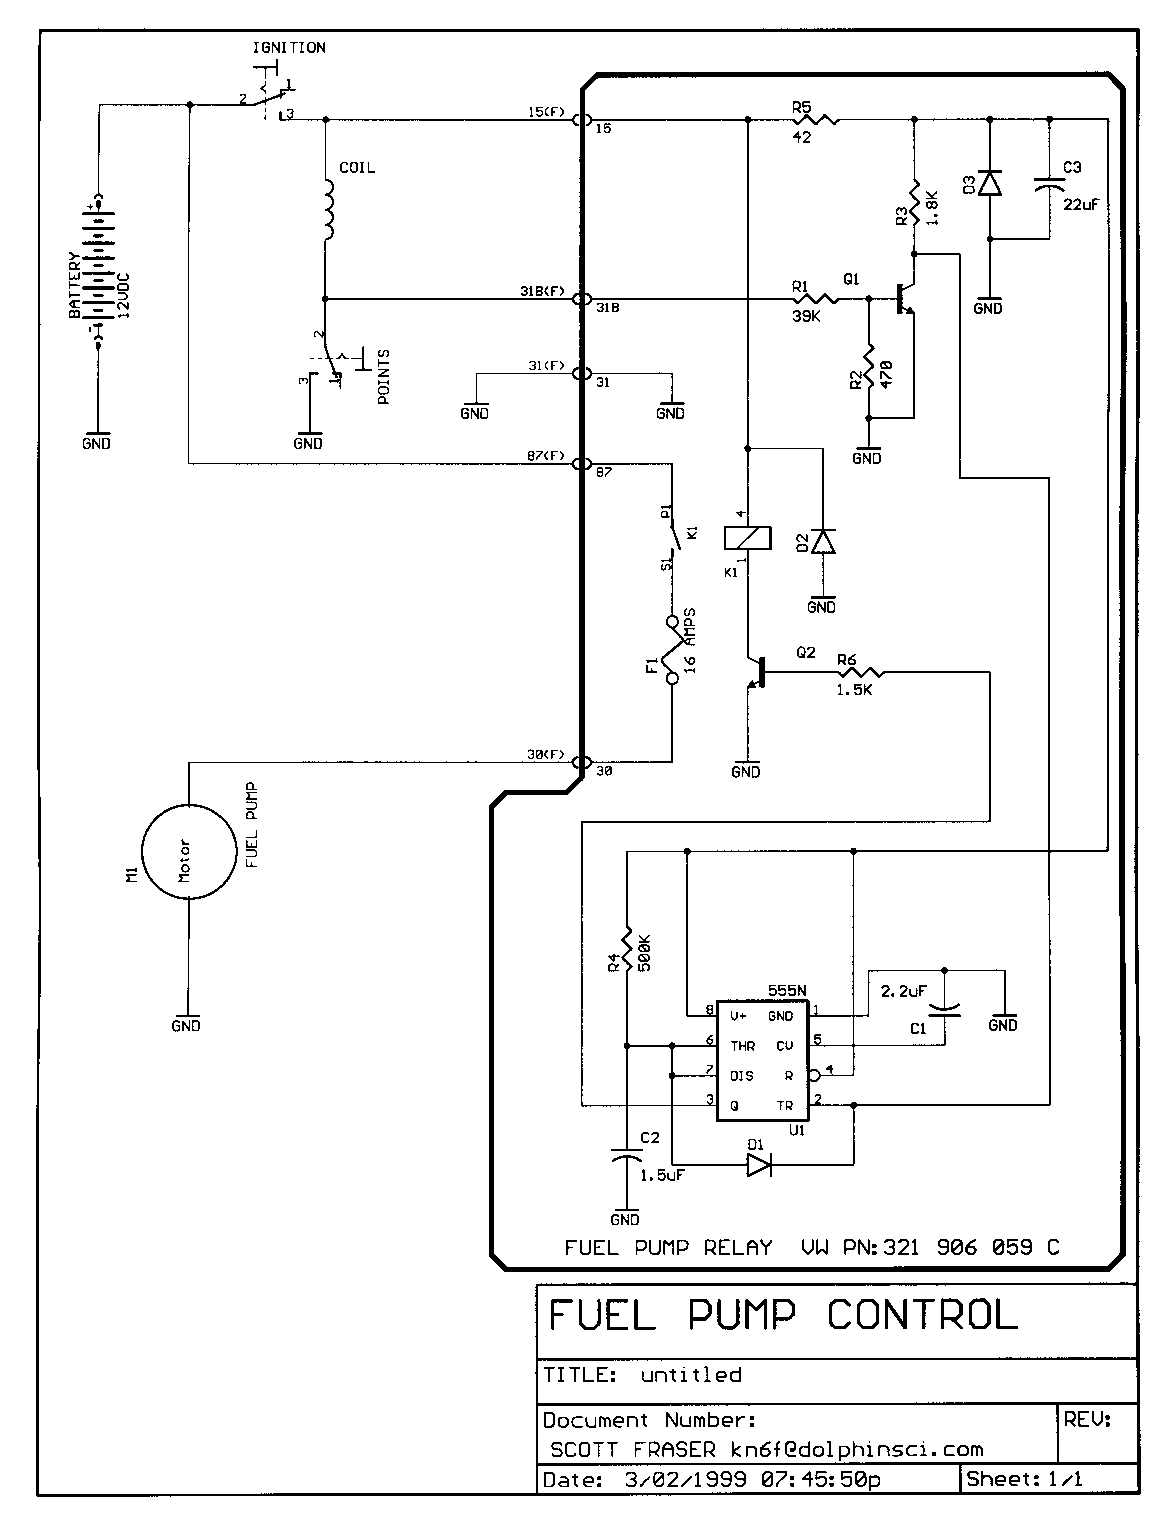 thesamba com bay window bus view topic fuel pump wiring image have been reduced in size click image to view fullscreen